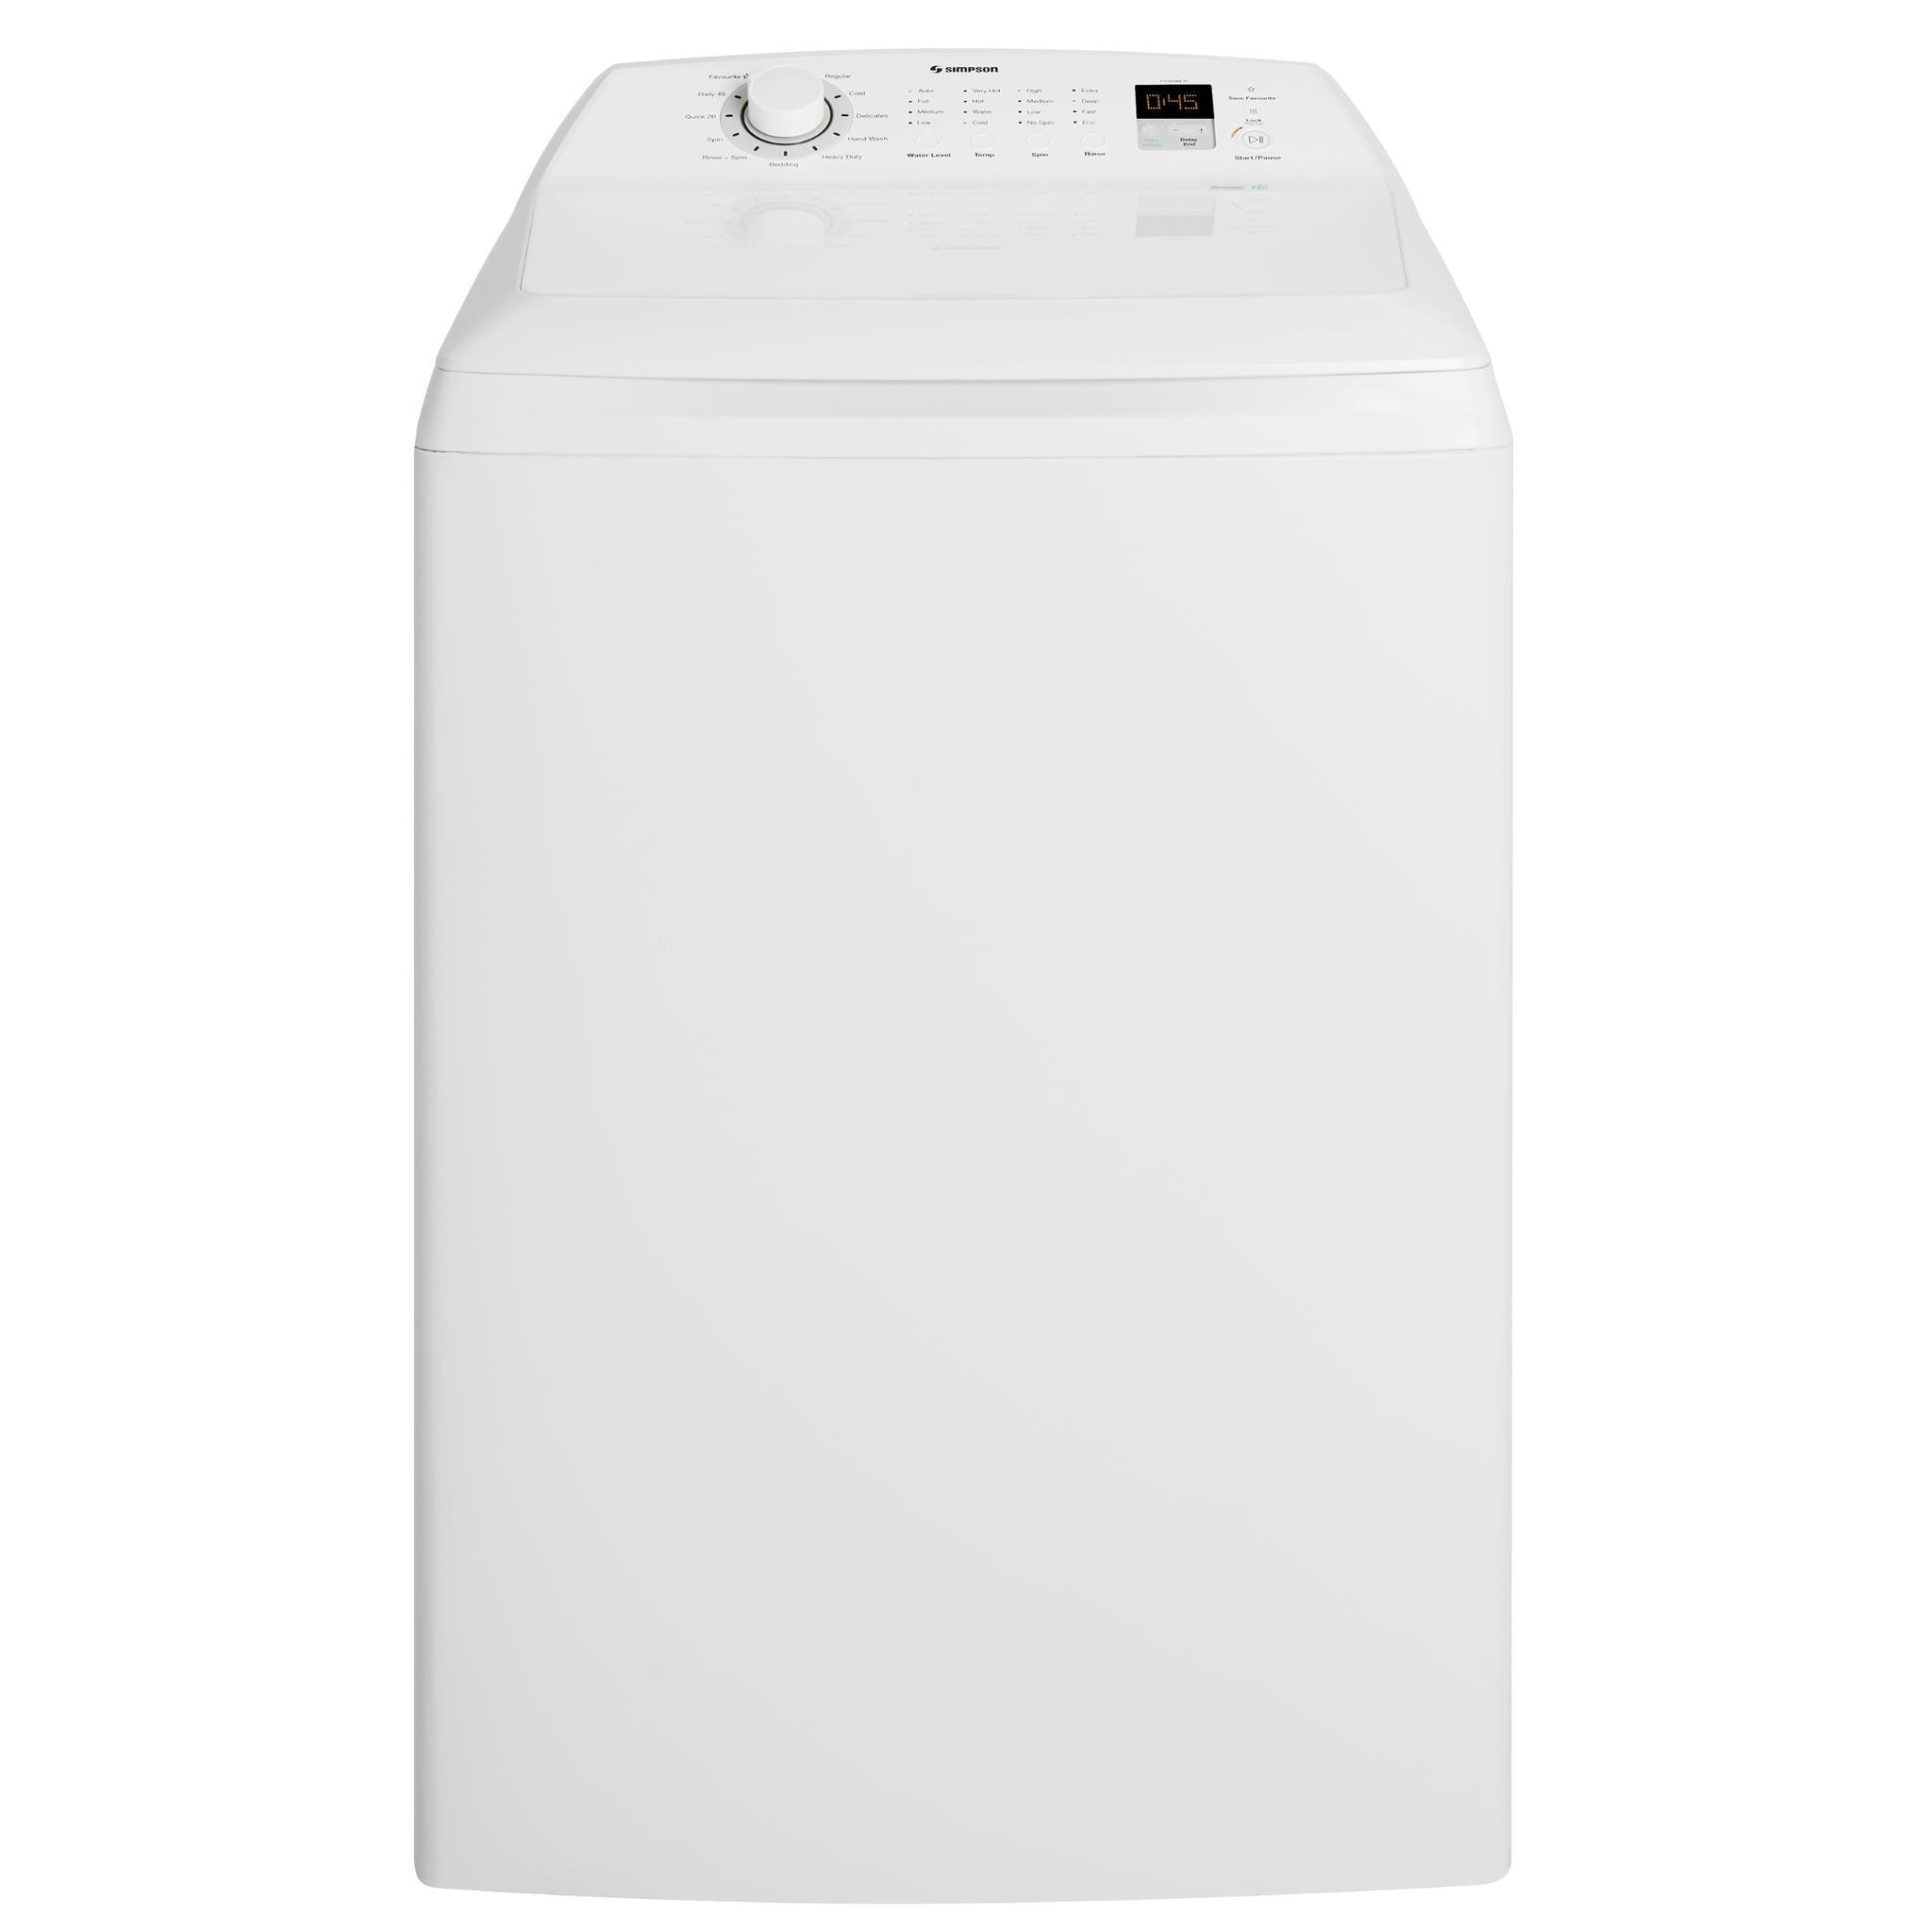 Simpson SWT1254LCWA 12kg Top Load Washer